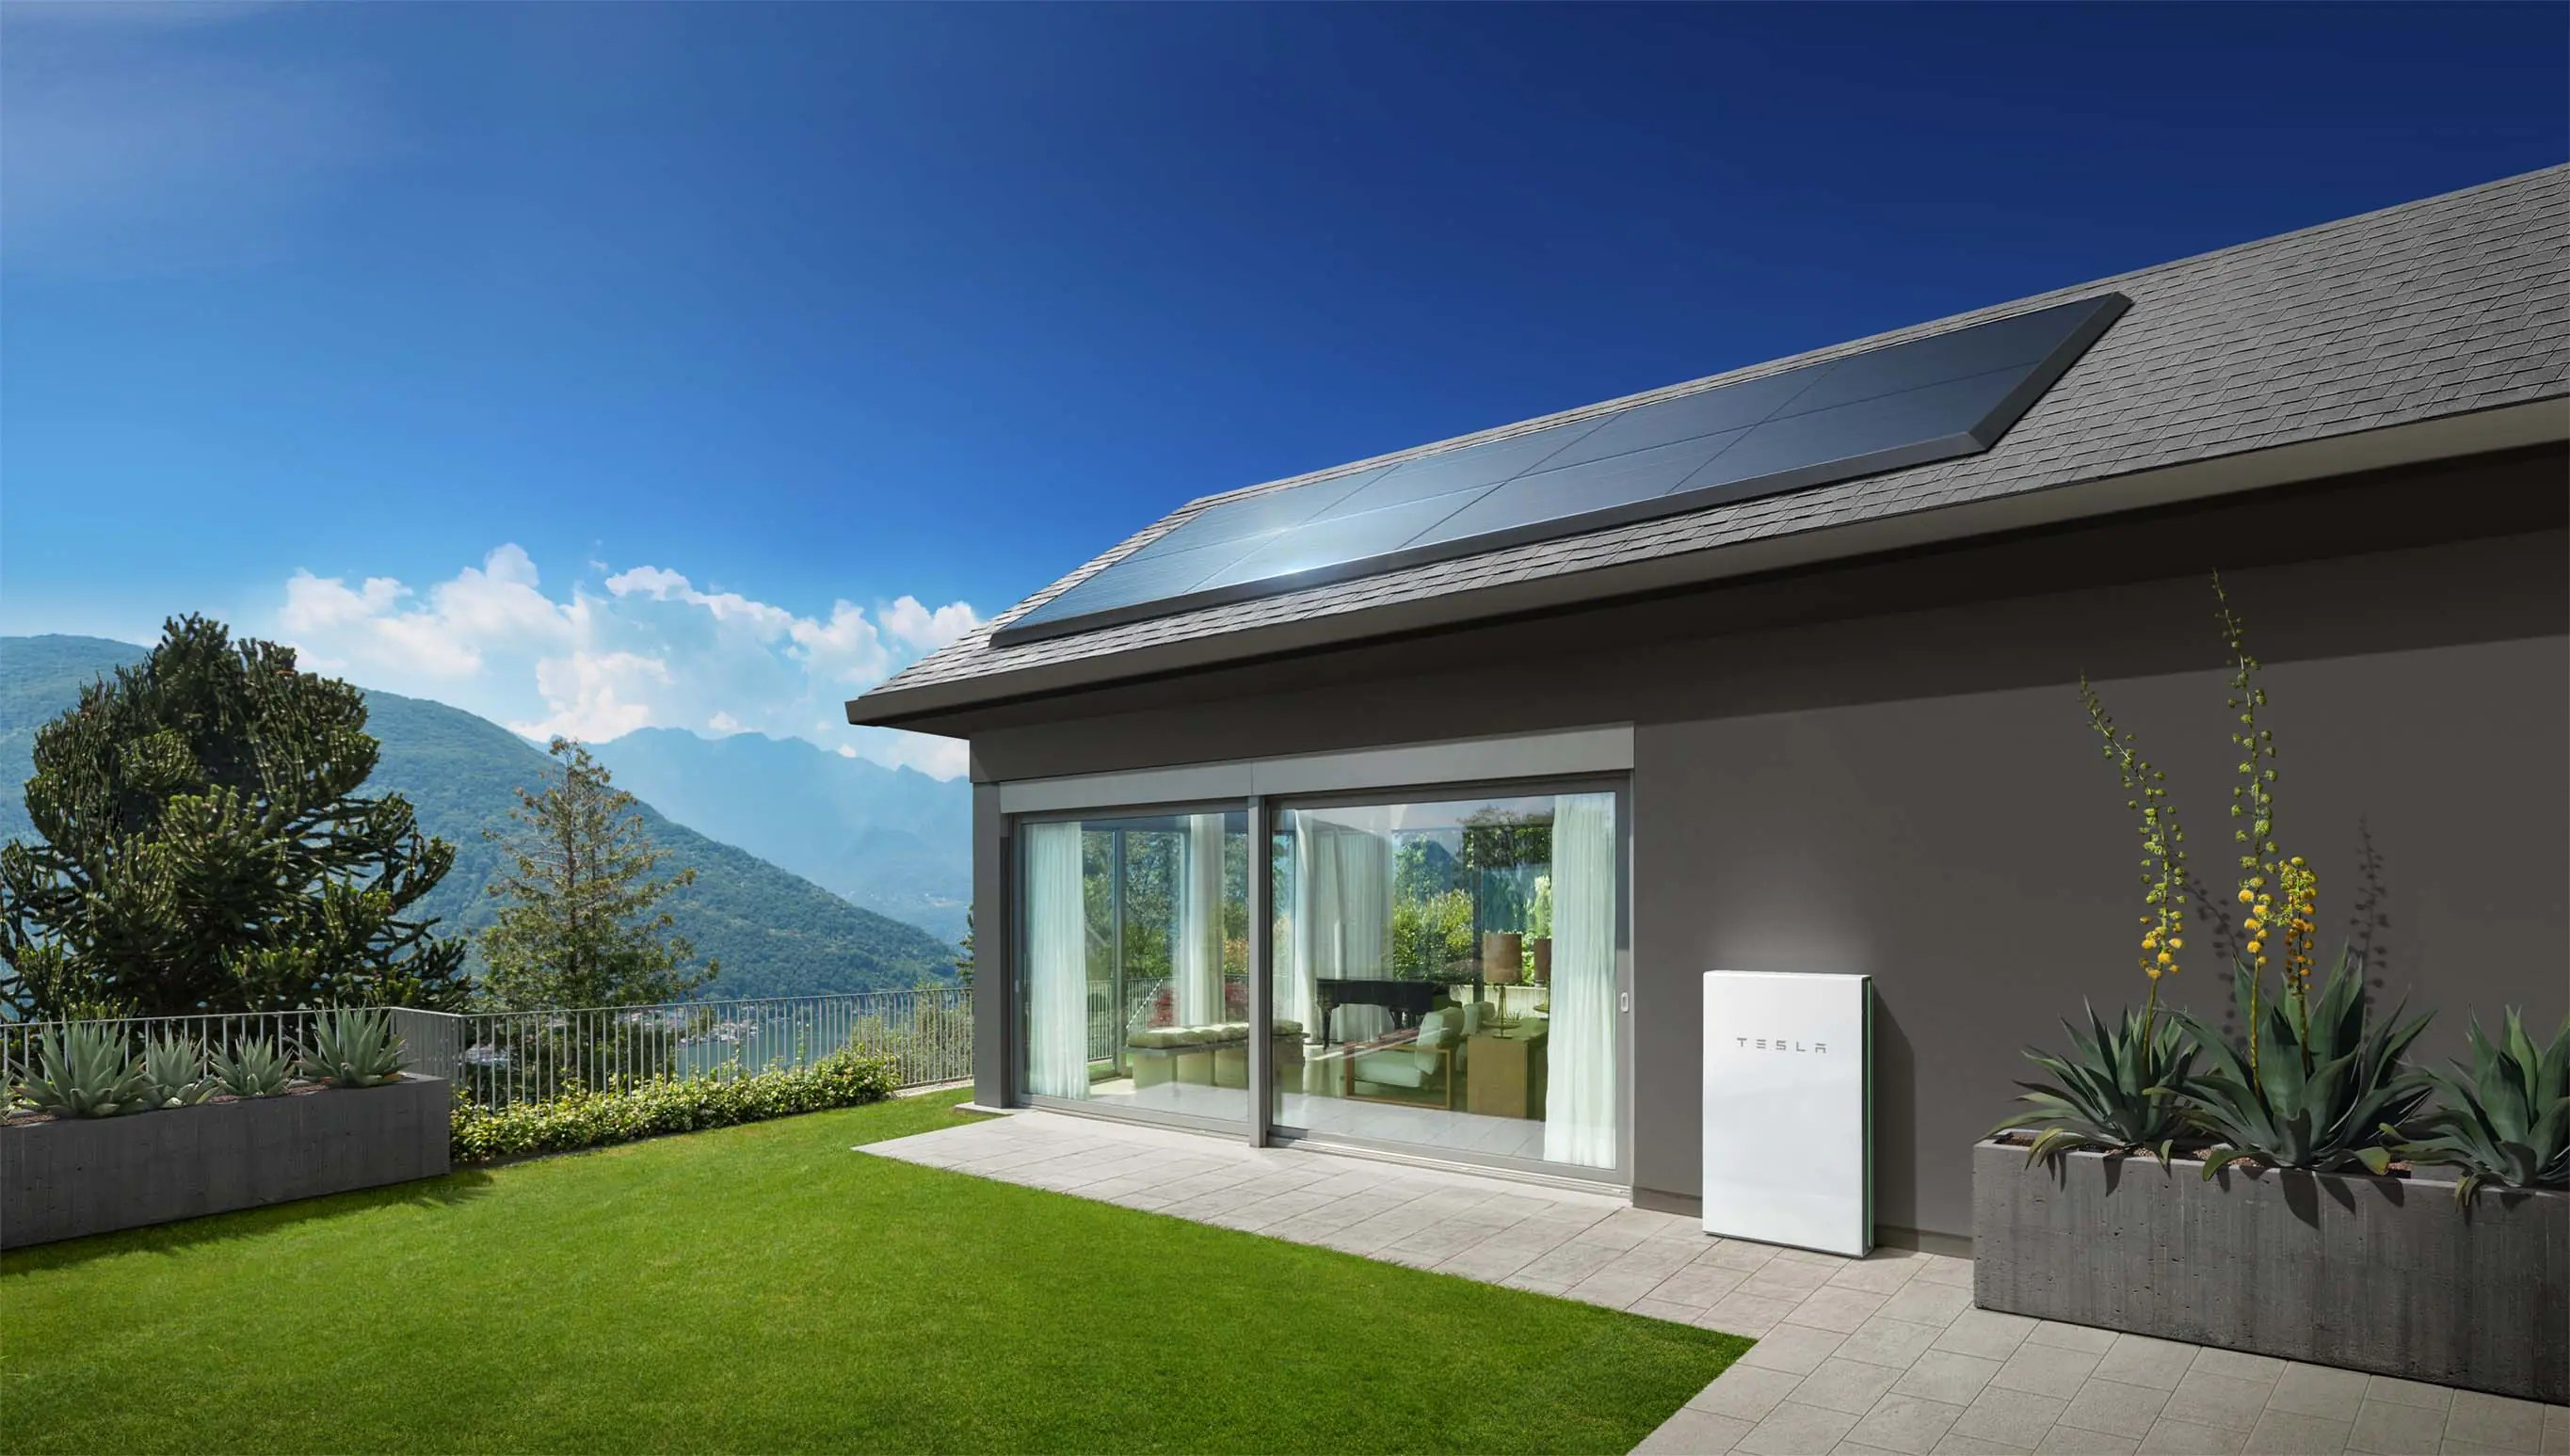 Image result for tesla powerwall site:tesla.com